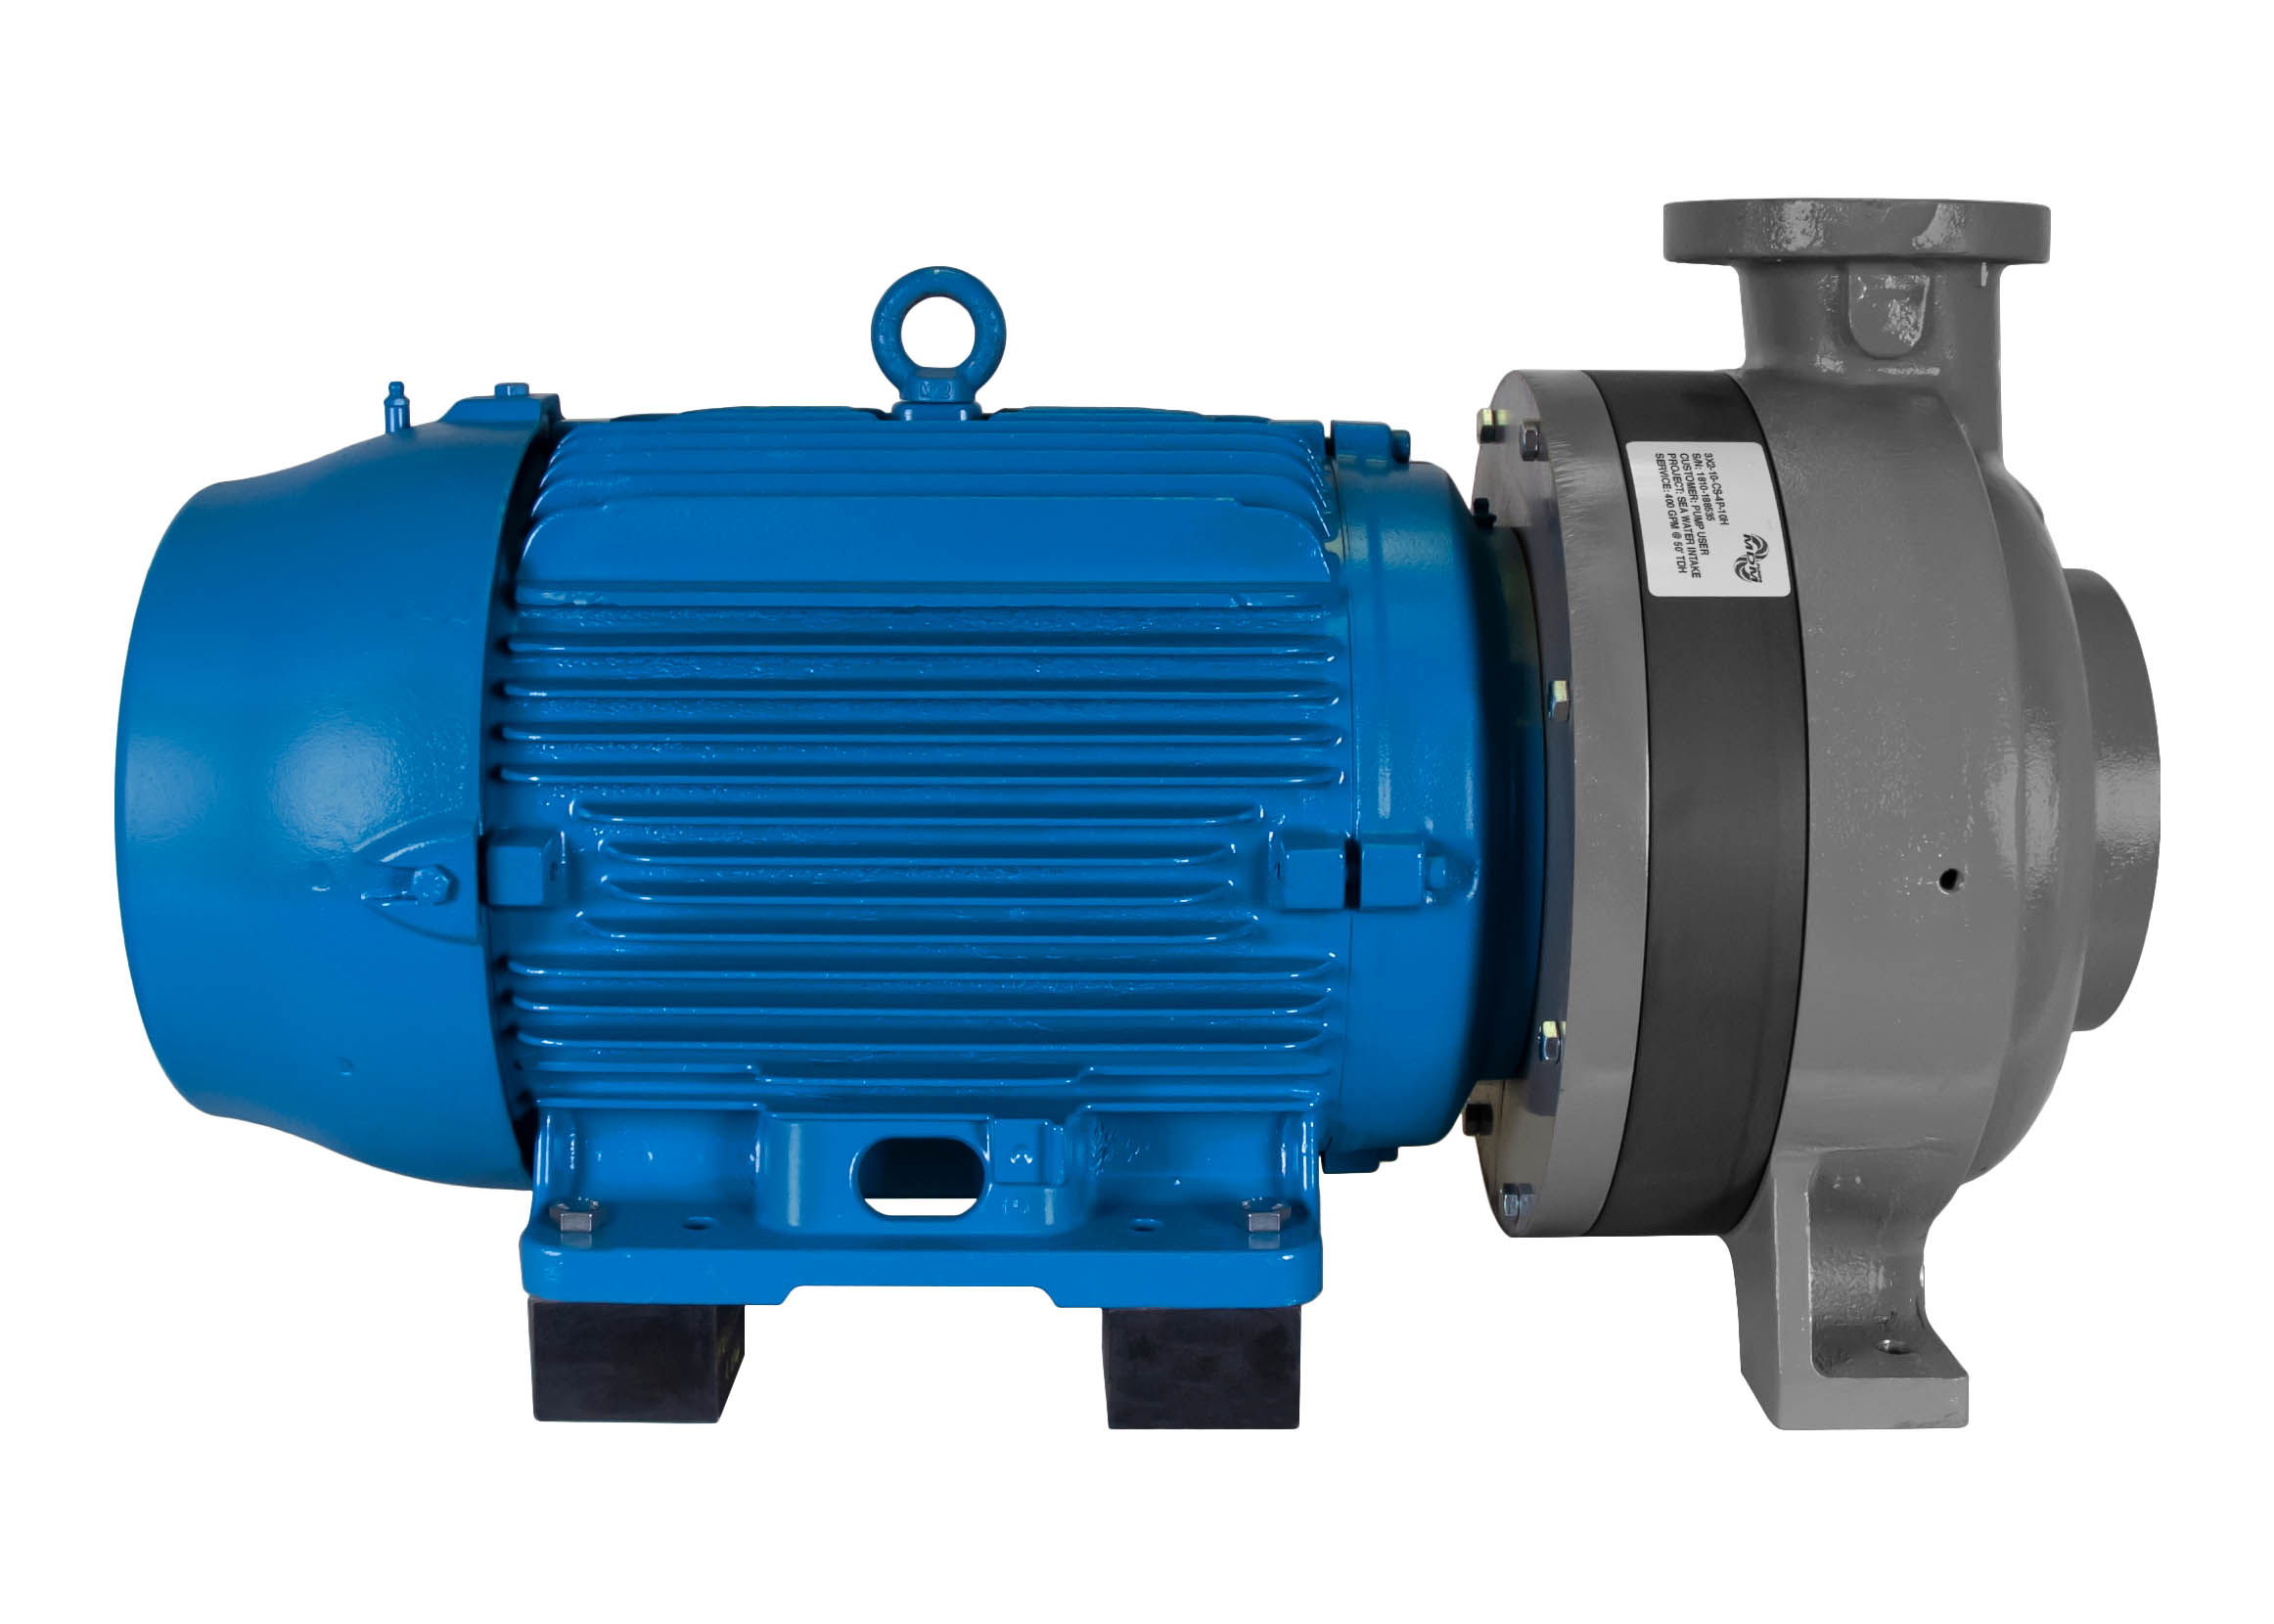 C-Shell 3x2-10 Pump with blue WEG Motor left side view